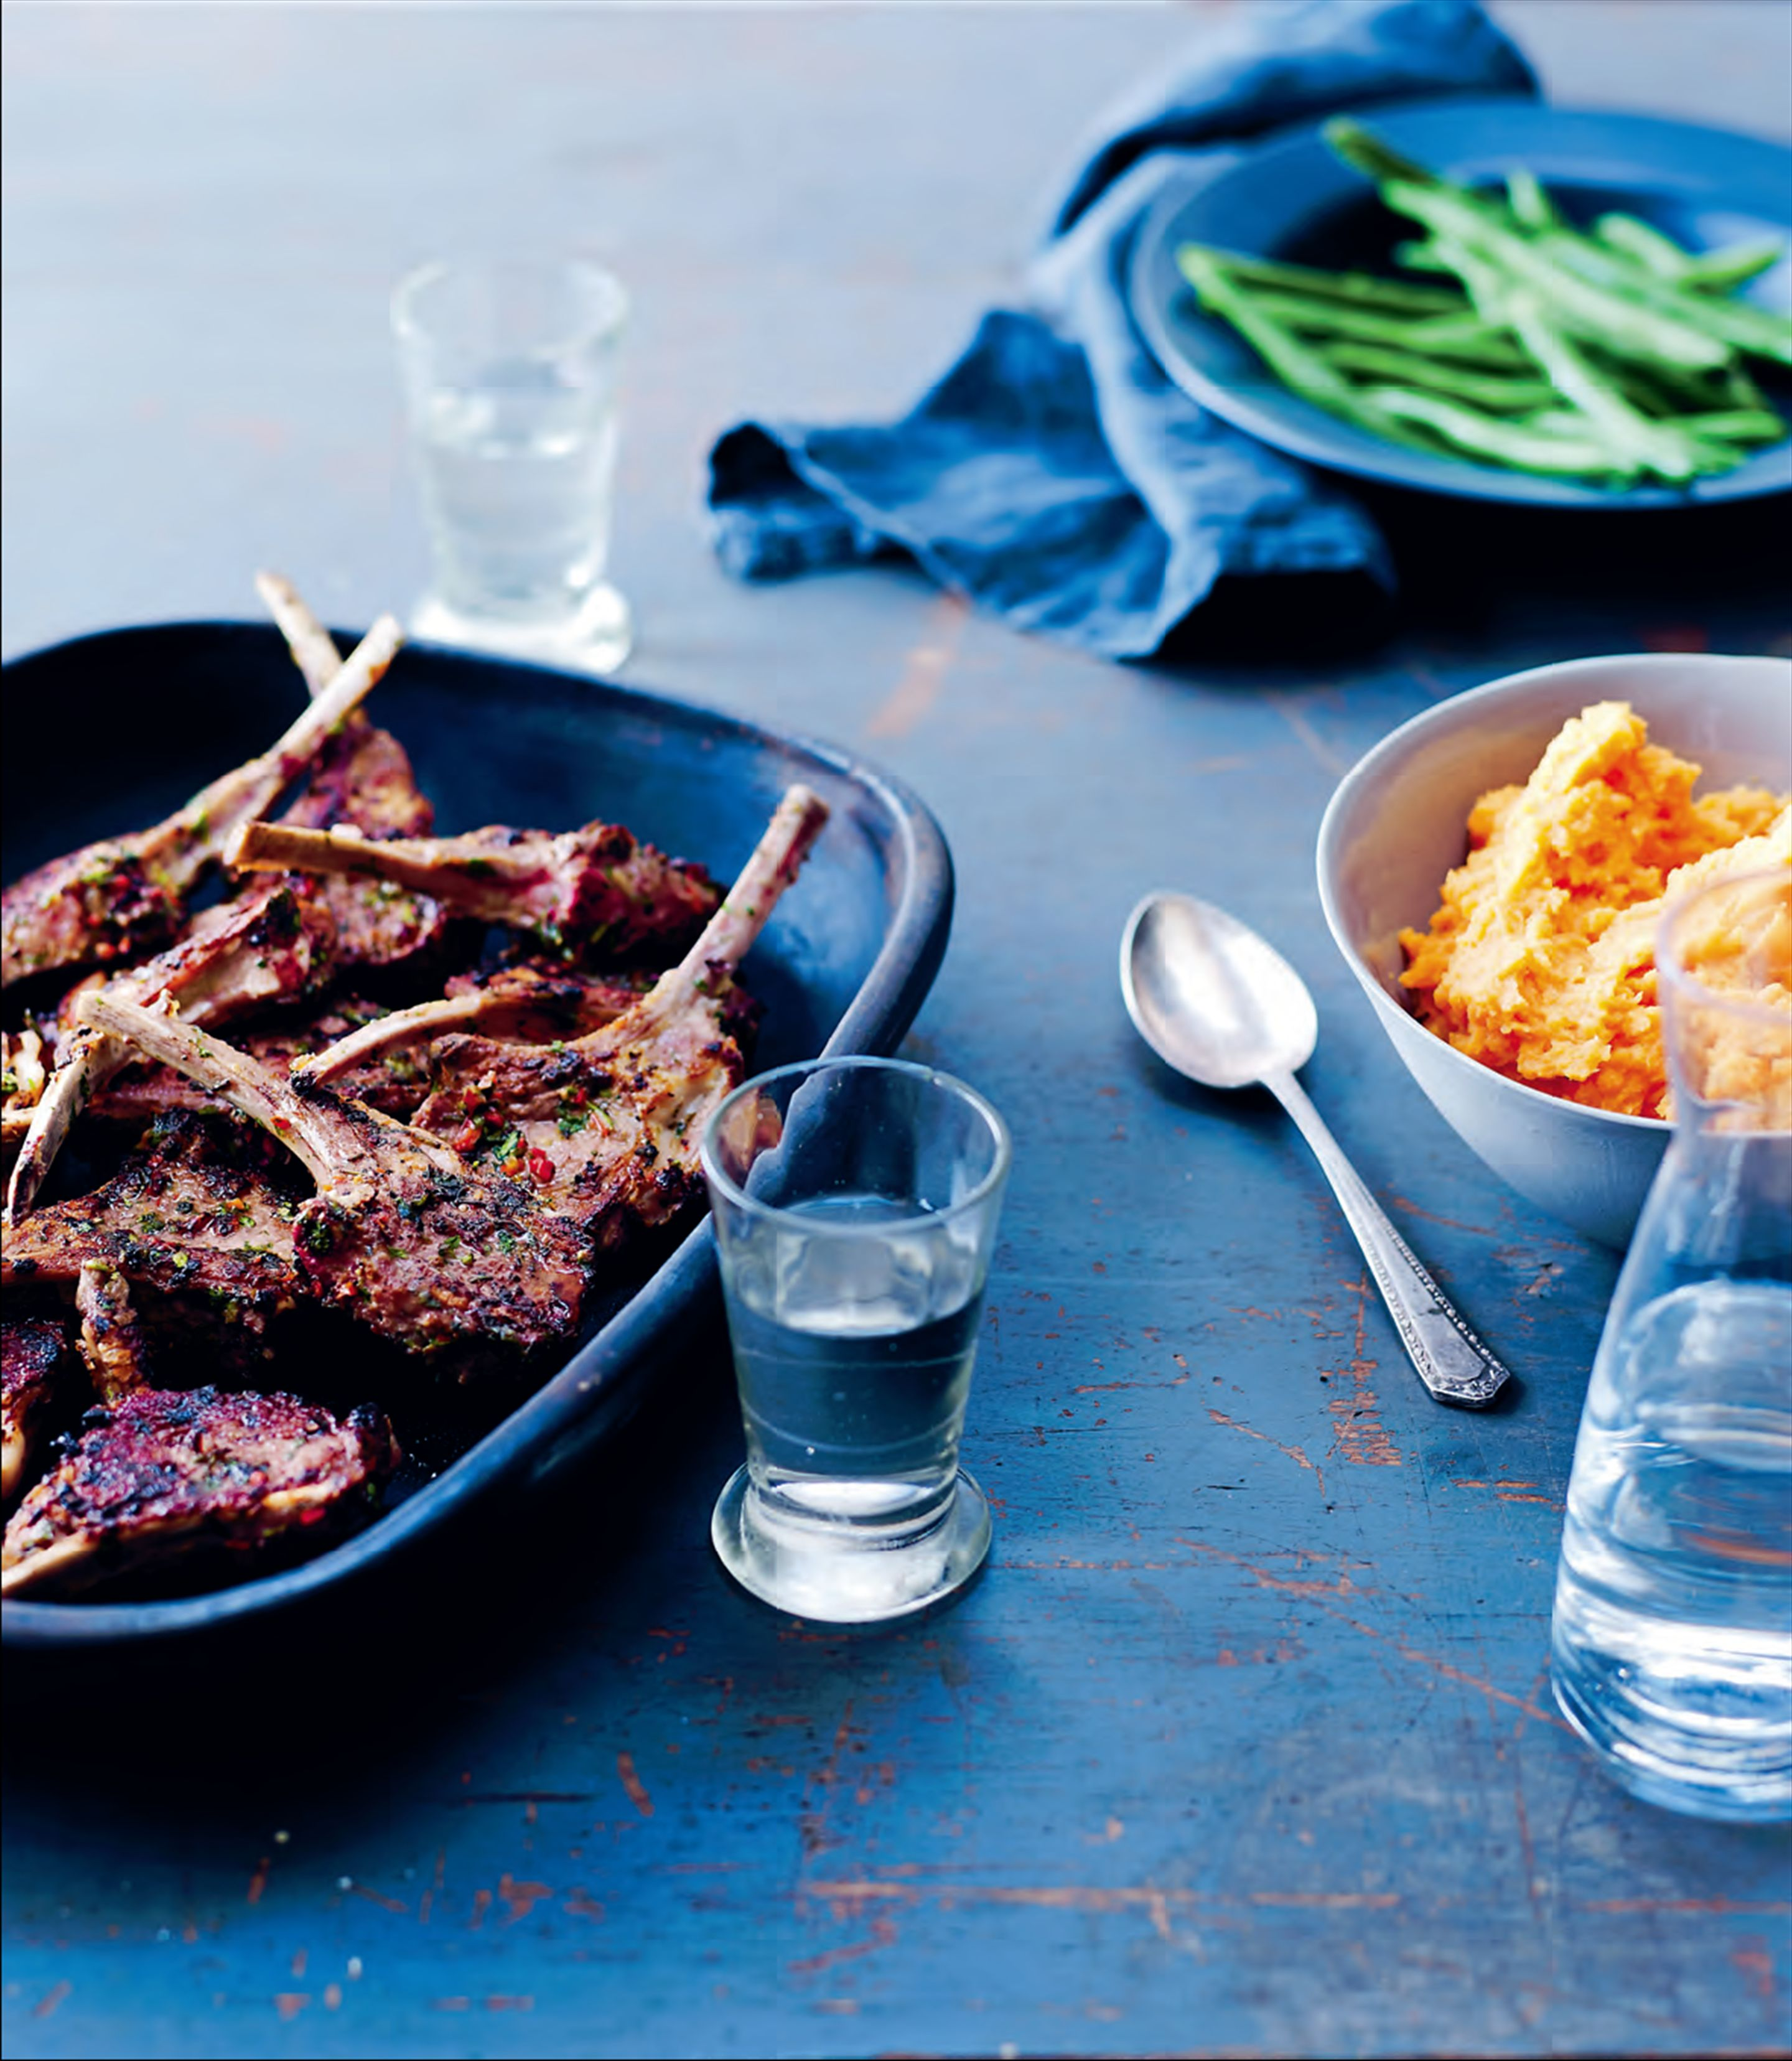 Coriander and chilli-crusted lamb cutlets with sweet potato mash